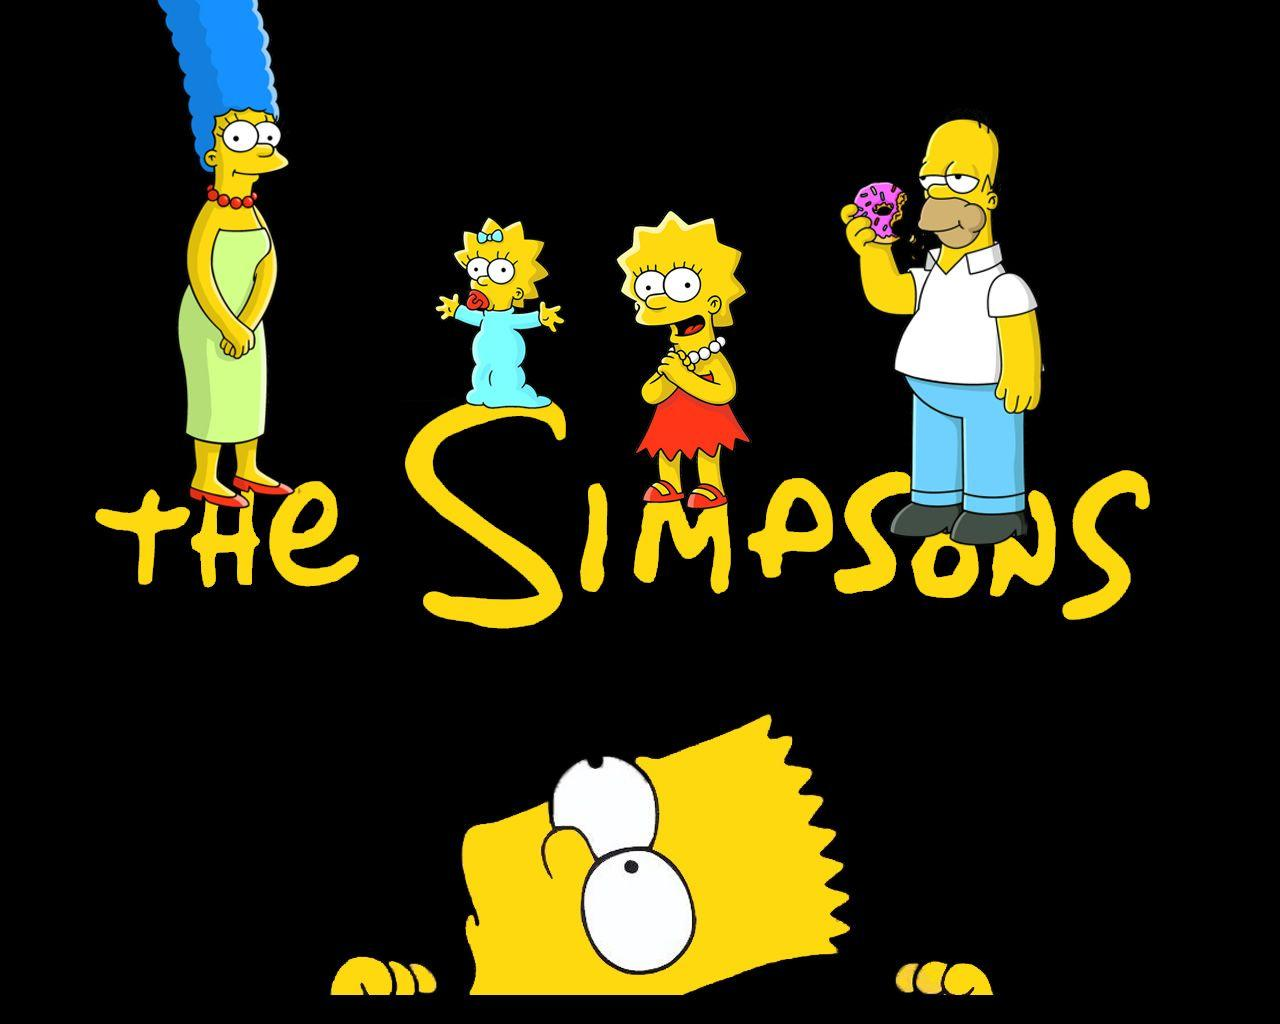 The Simpsons Wallpapers for iPad Air 2